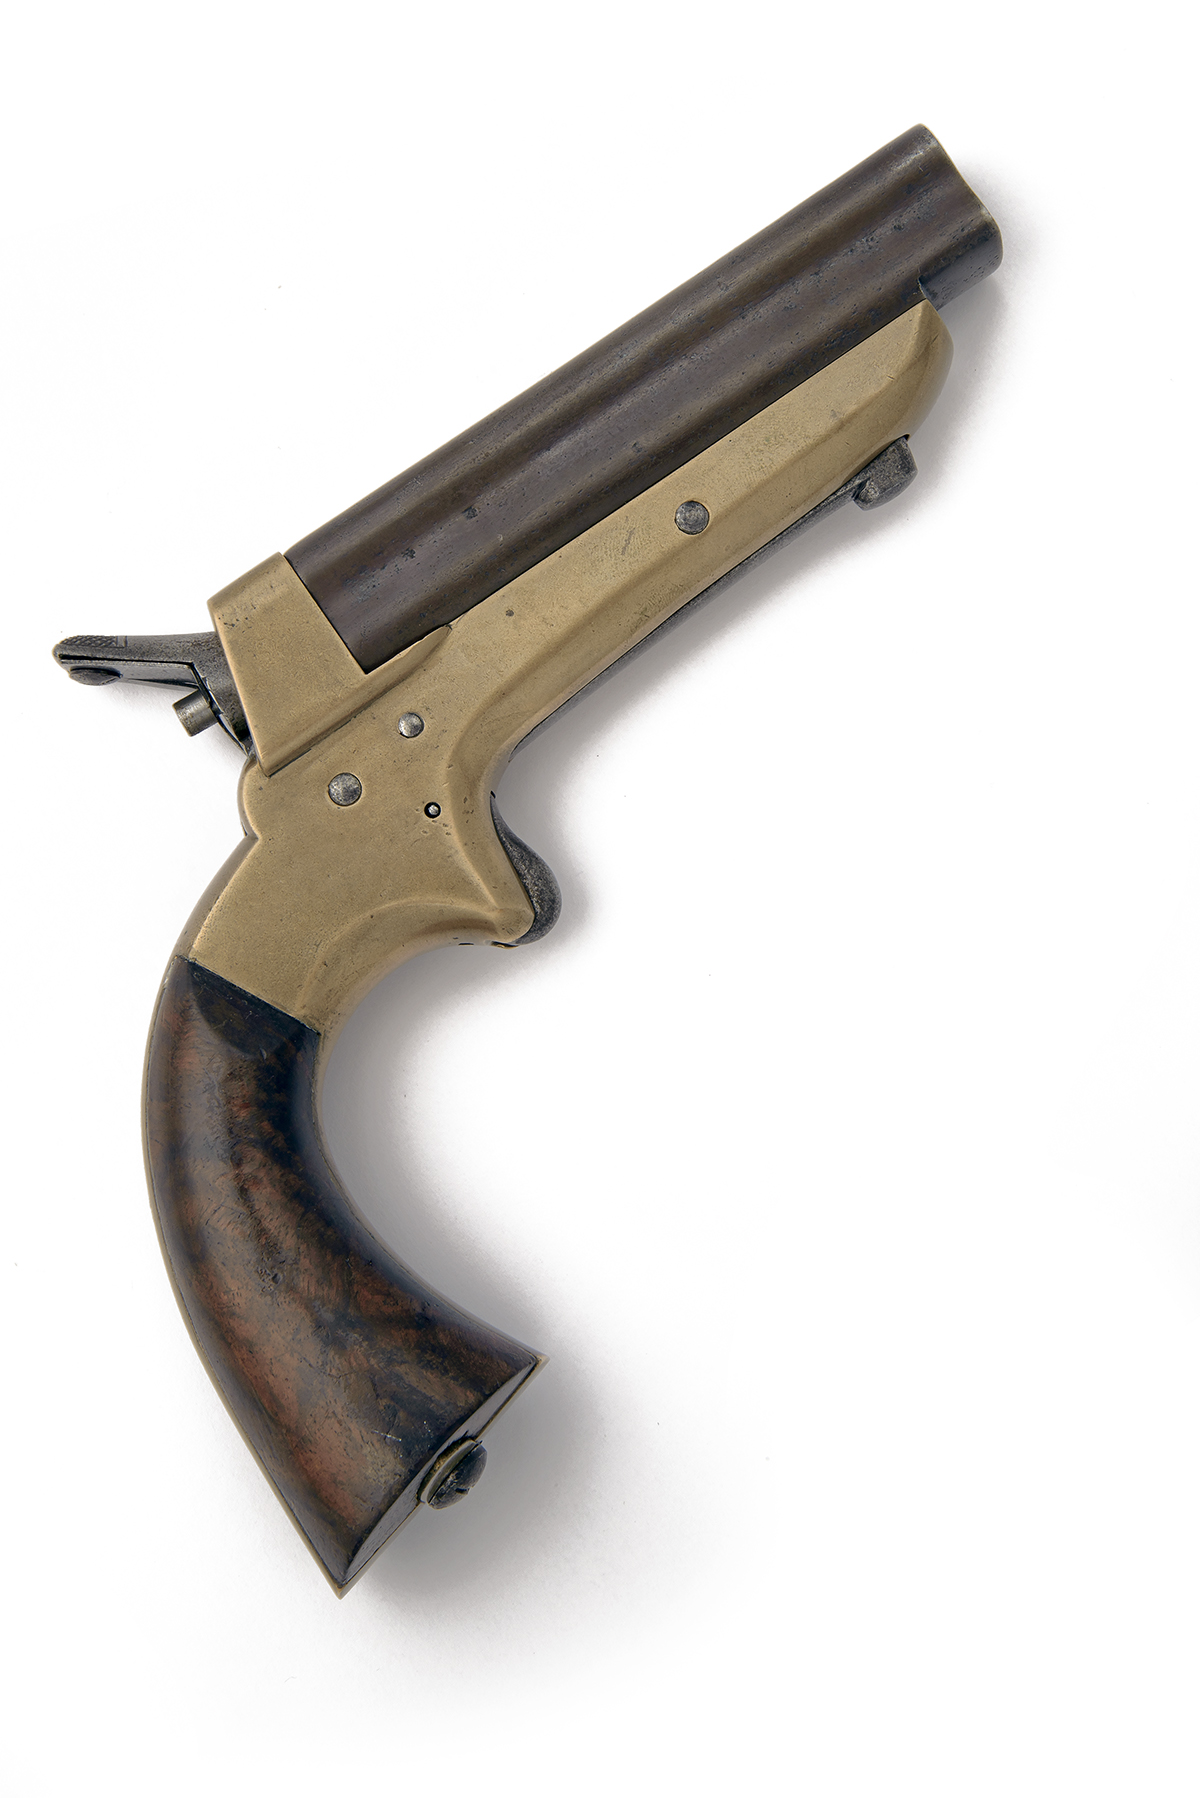 TIPPING & LAWDEN, AN UNUSUAL AND RARE .34 (RIMFIRE) OVERSIZED FOUR-BARRELLED OVERCOAT-PISTOL,